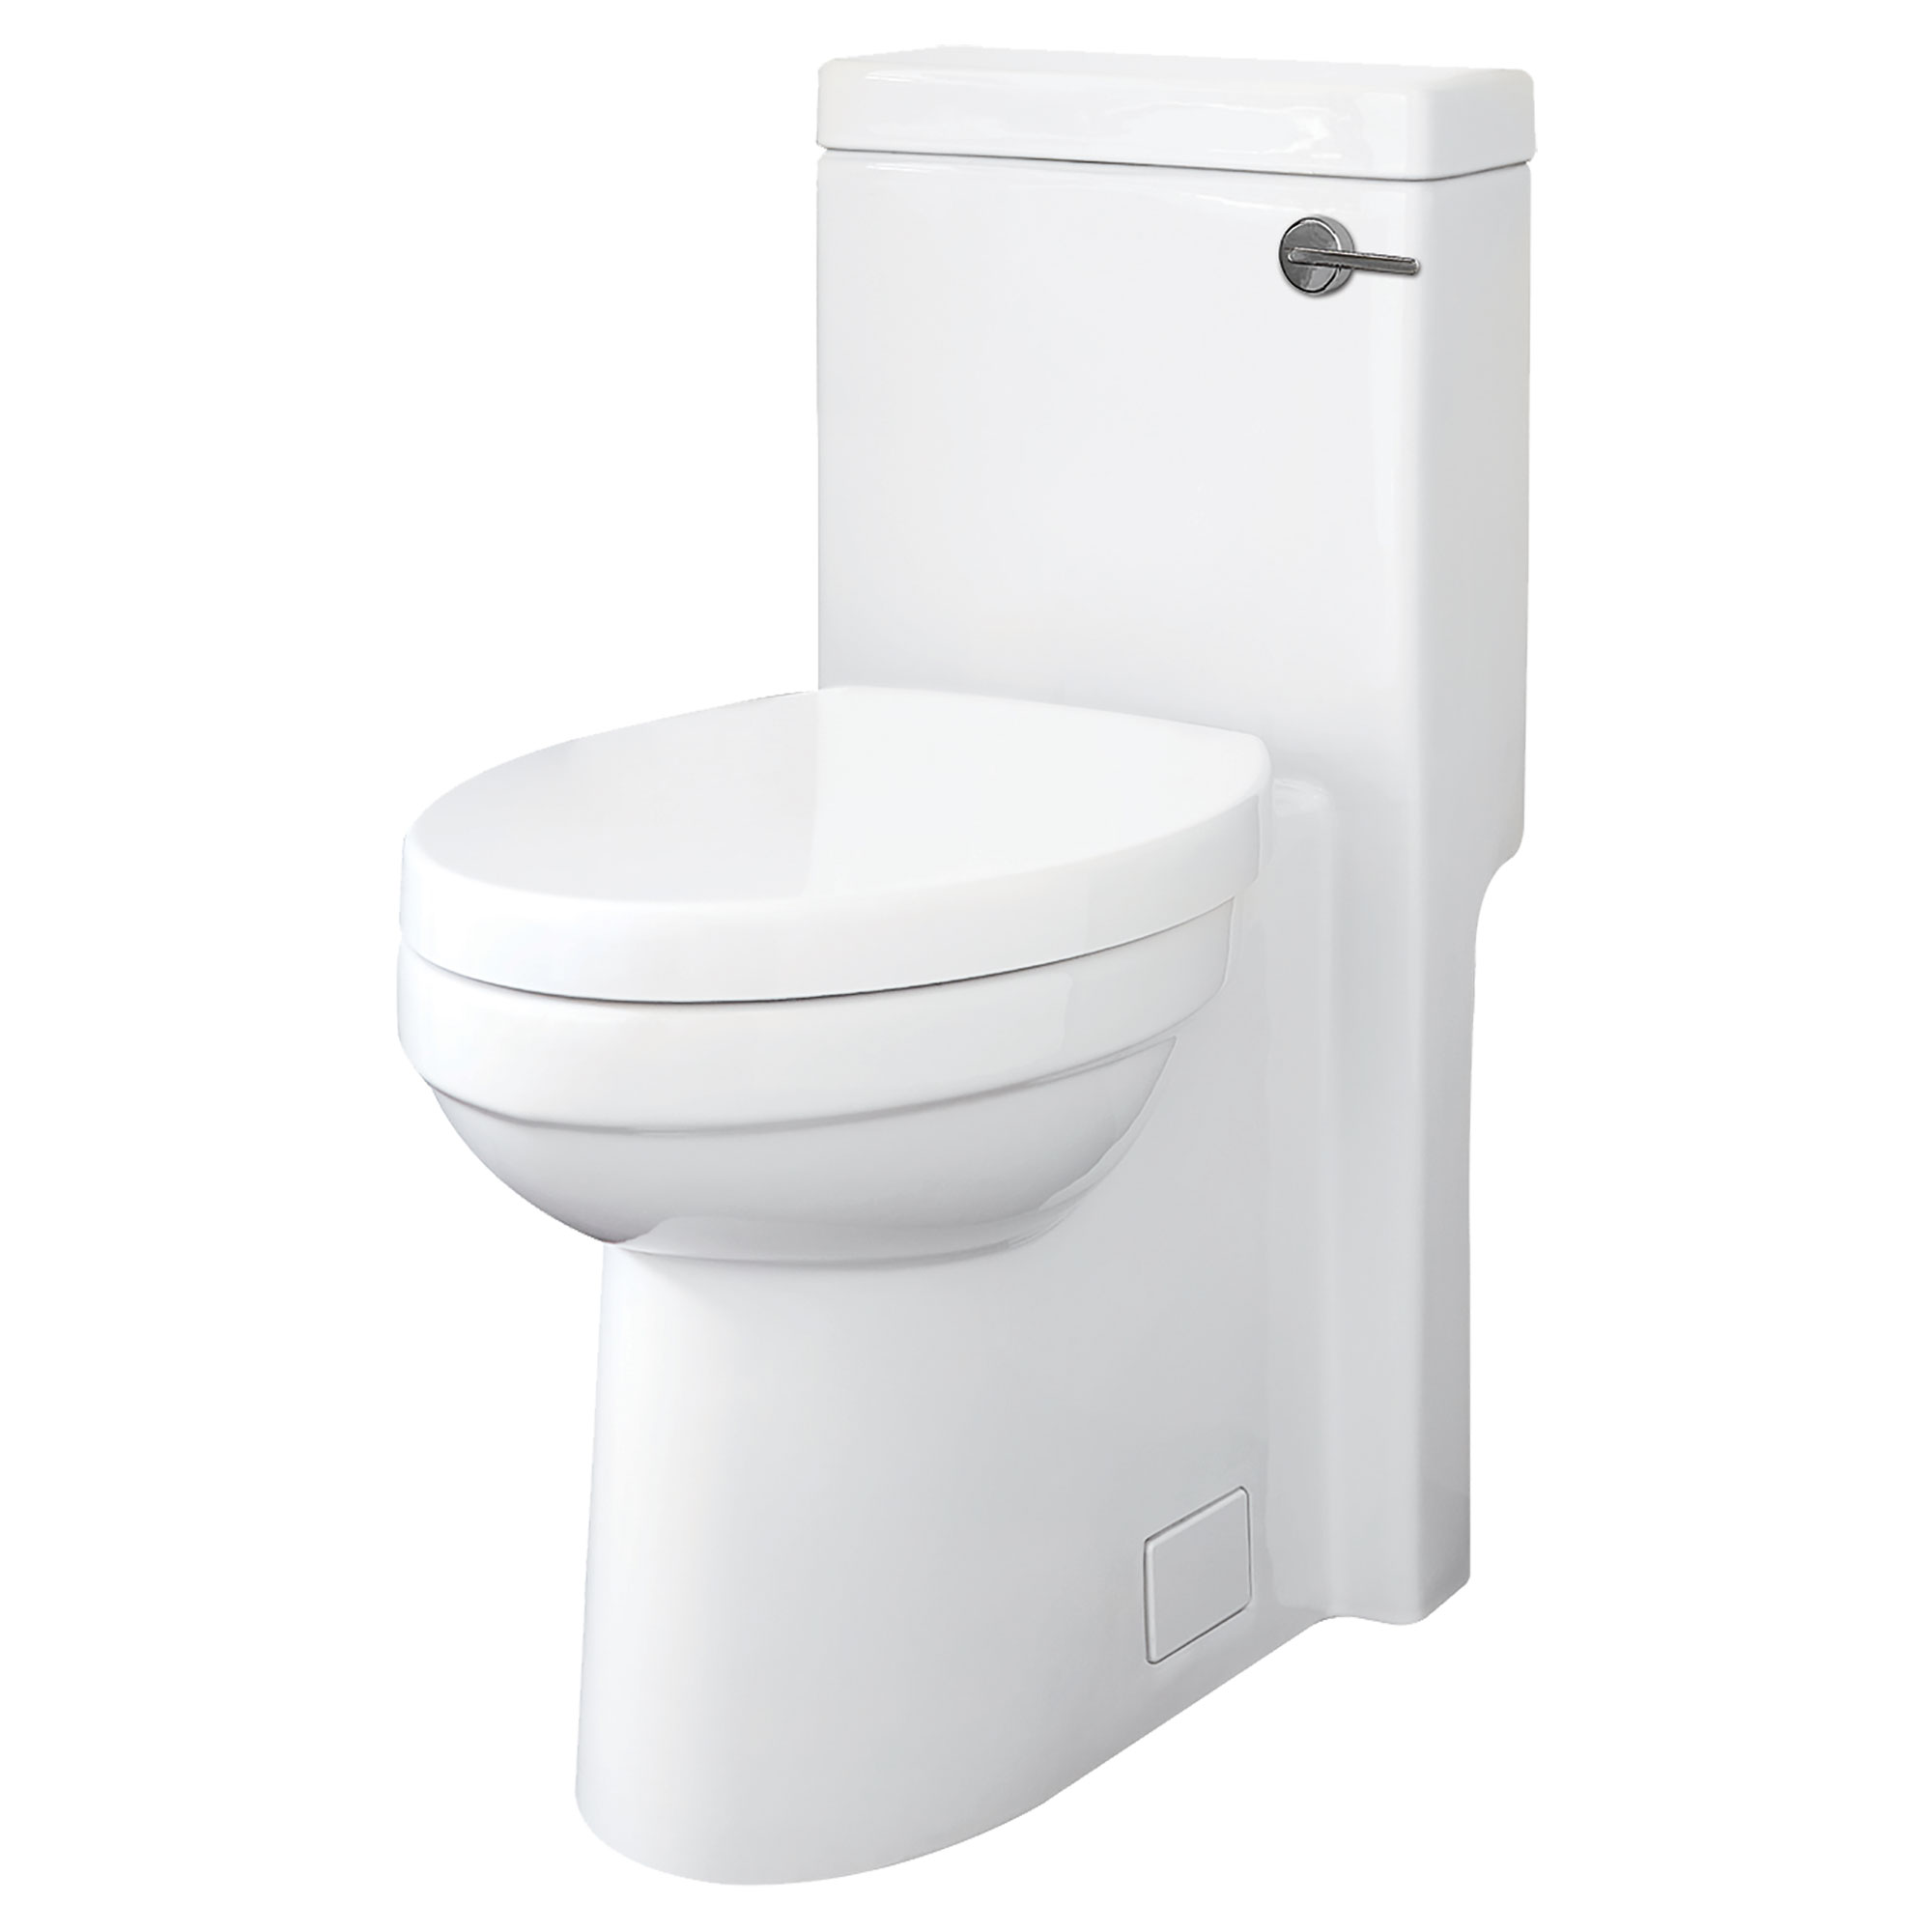 Cossu Elongated One-Piece Toilet with Right-Hand Trip Lever - Projects Model